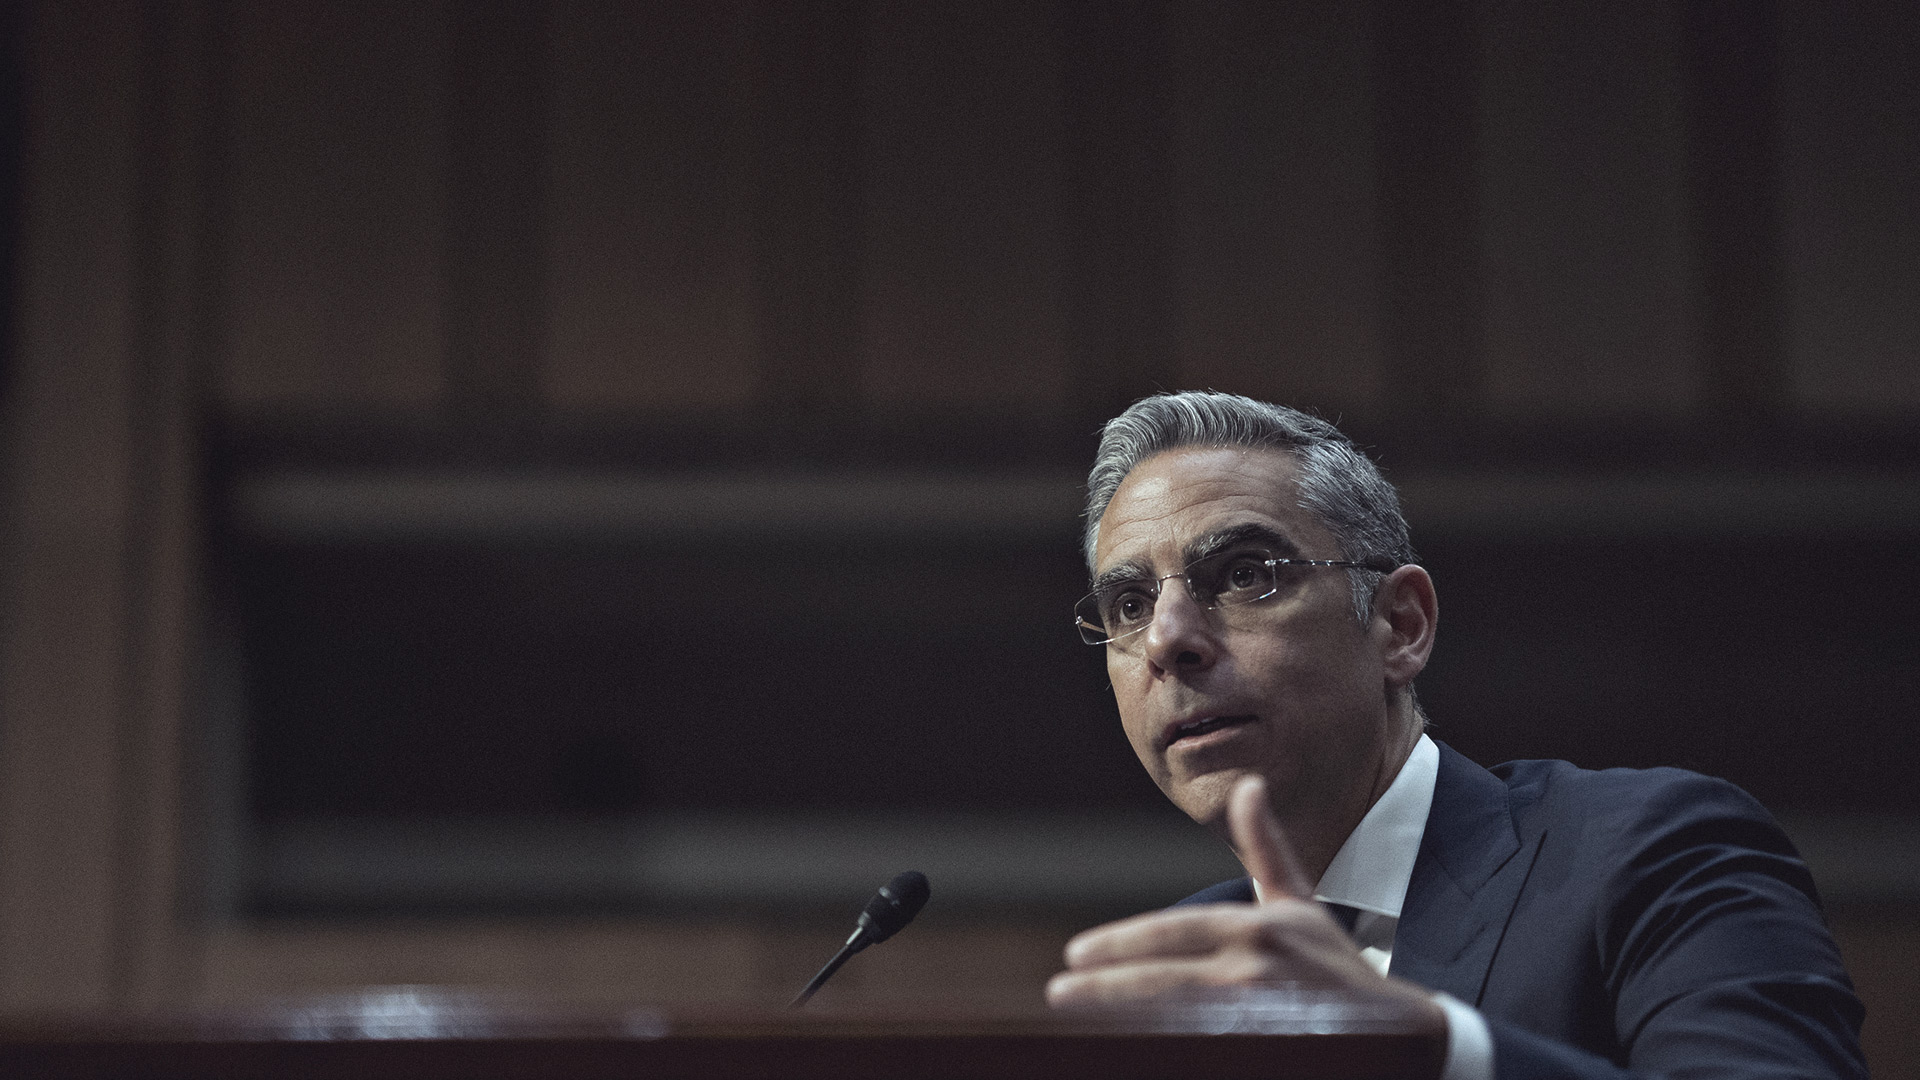 David Marcus: Facebook and Novi are 'definitely looking' to integrate NFTs